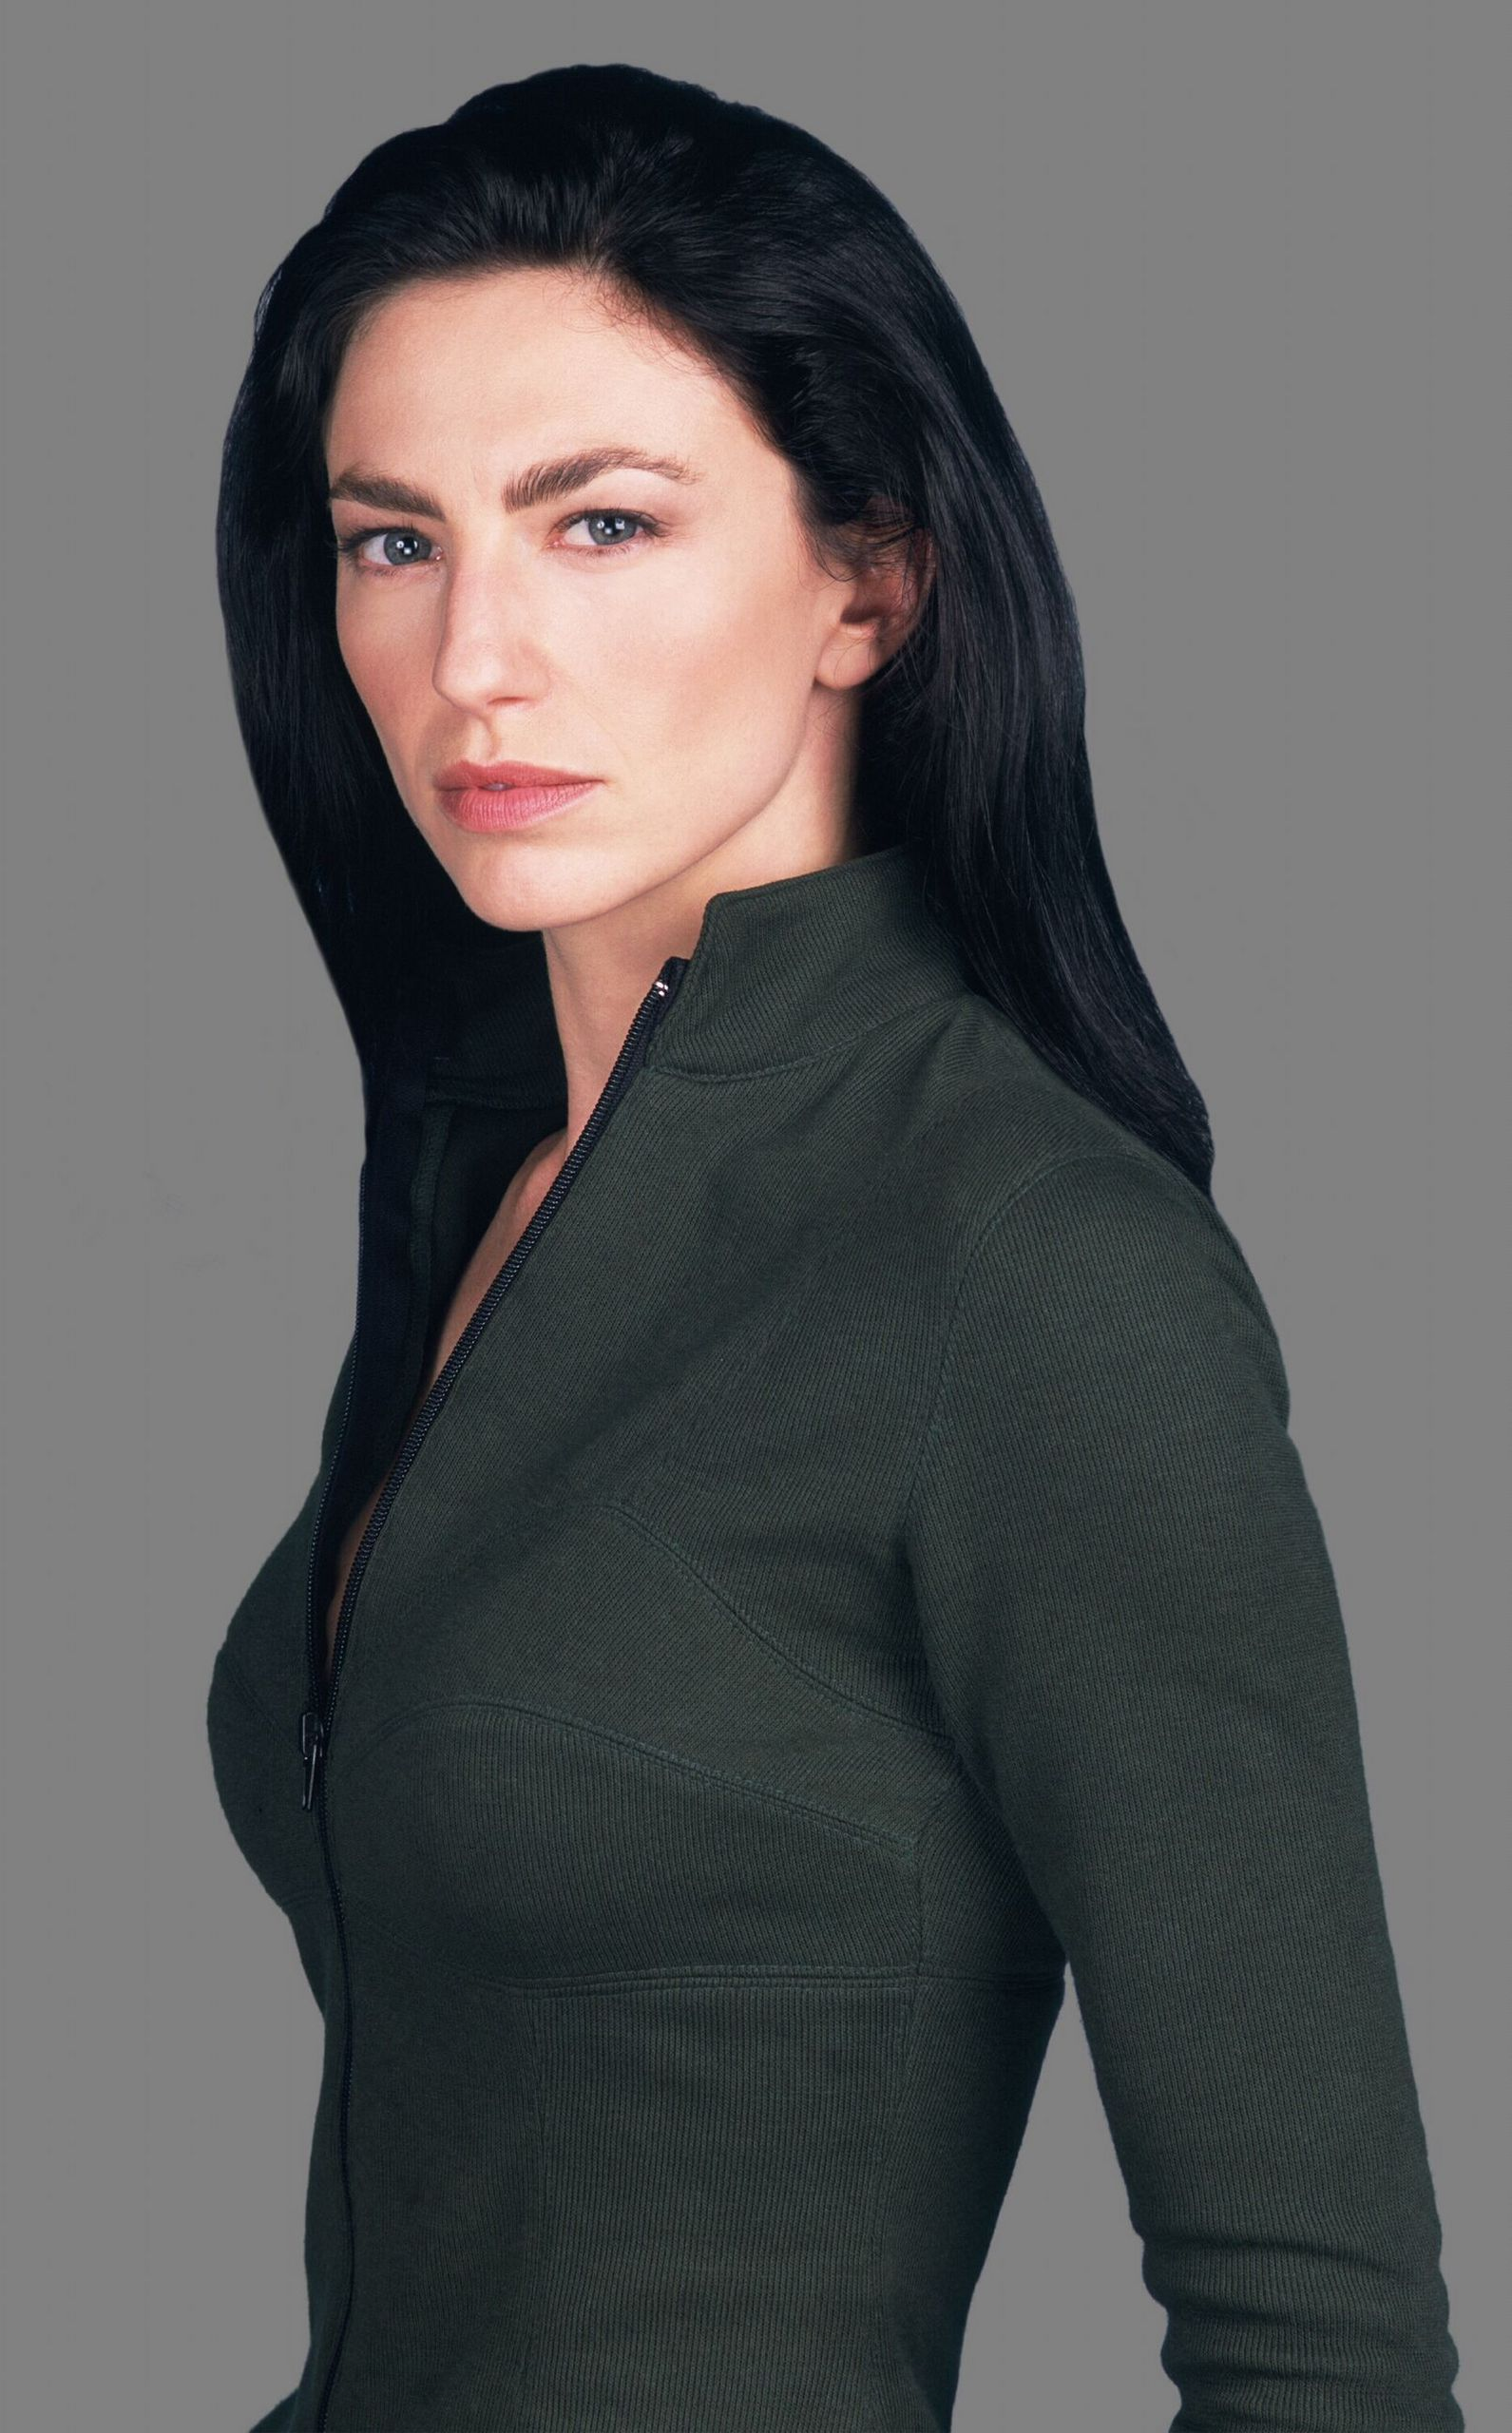 Claudia Black So Gorgeous And She Has That Sexy Brittish Thing